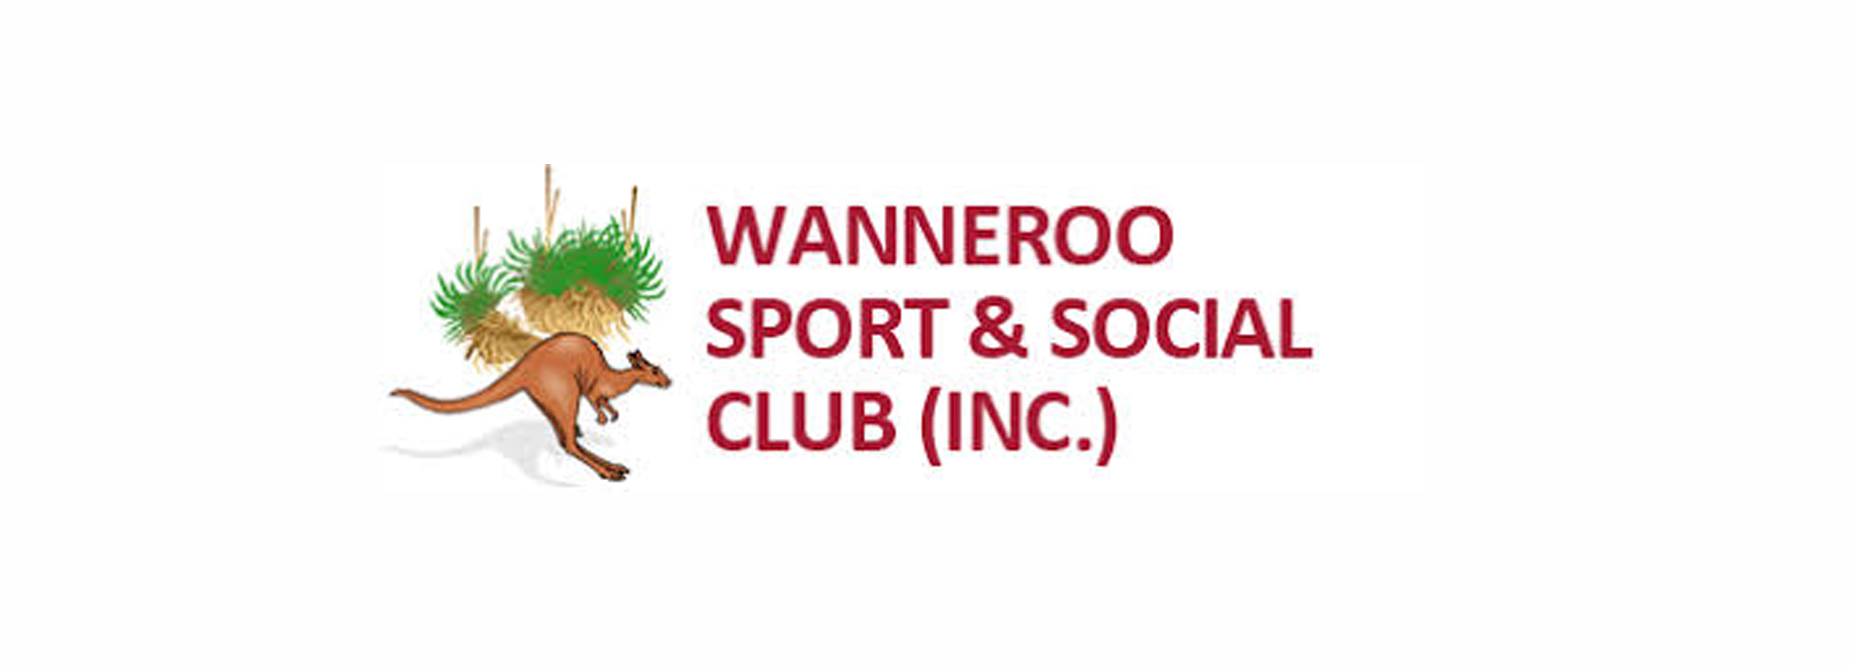 Wanneroo Sports Club Logo